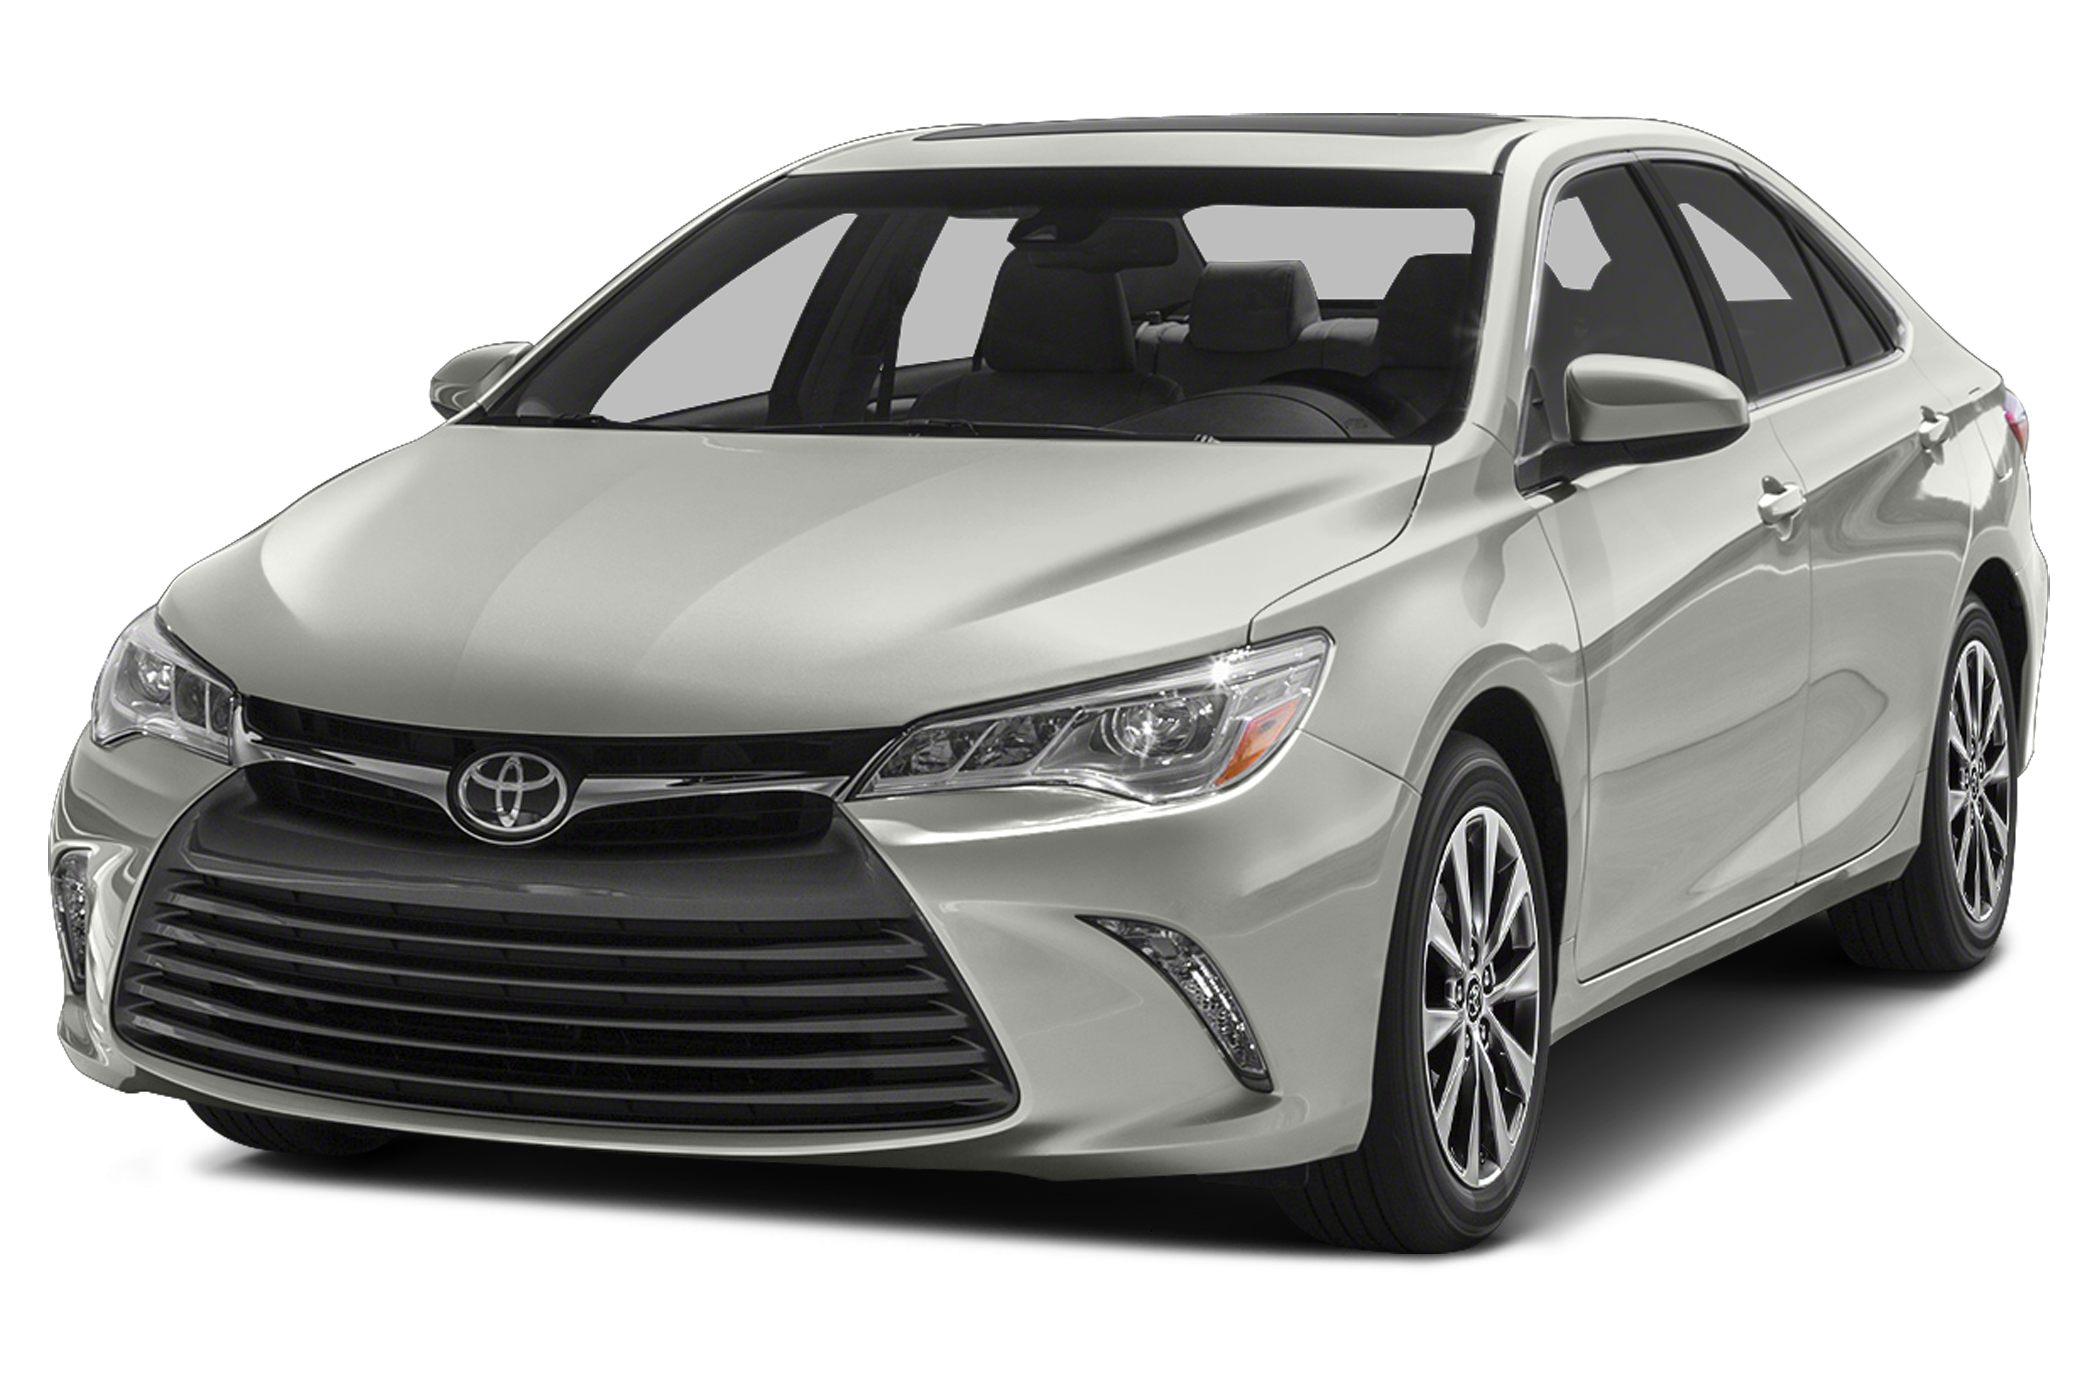 2015 Toyota Camry XLE Sedan for sale in Dalton for $35,127 with 4 miles